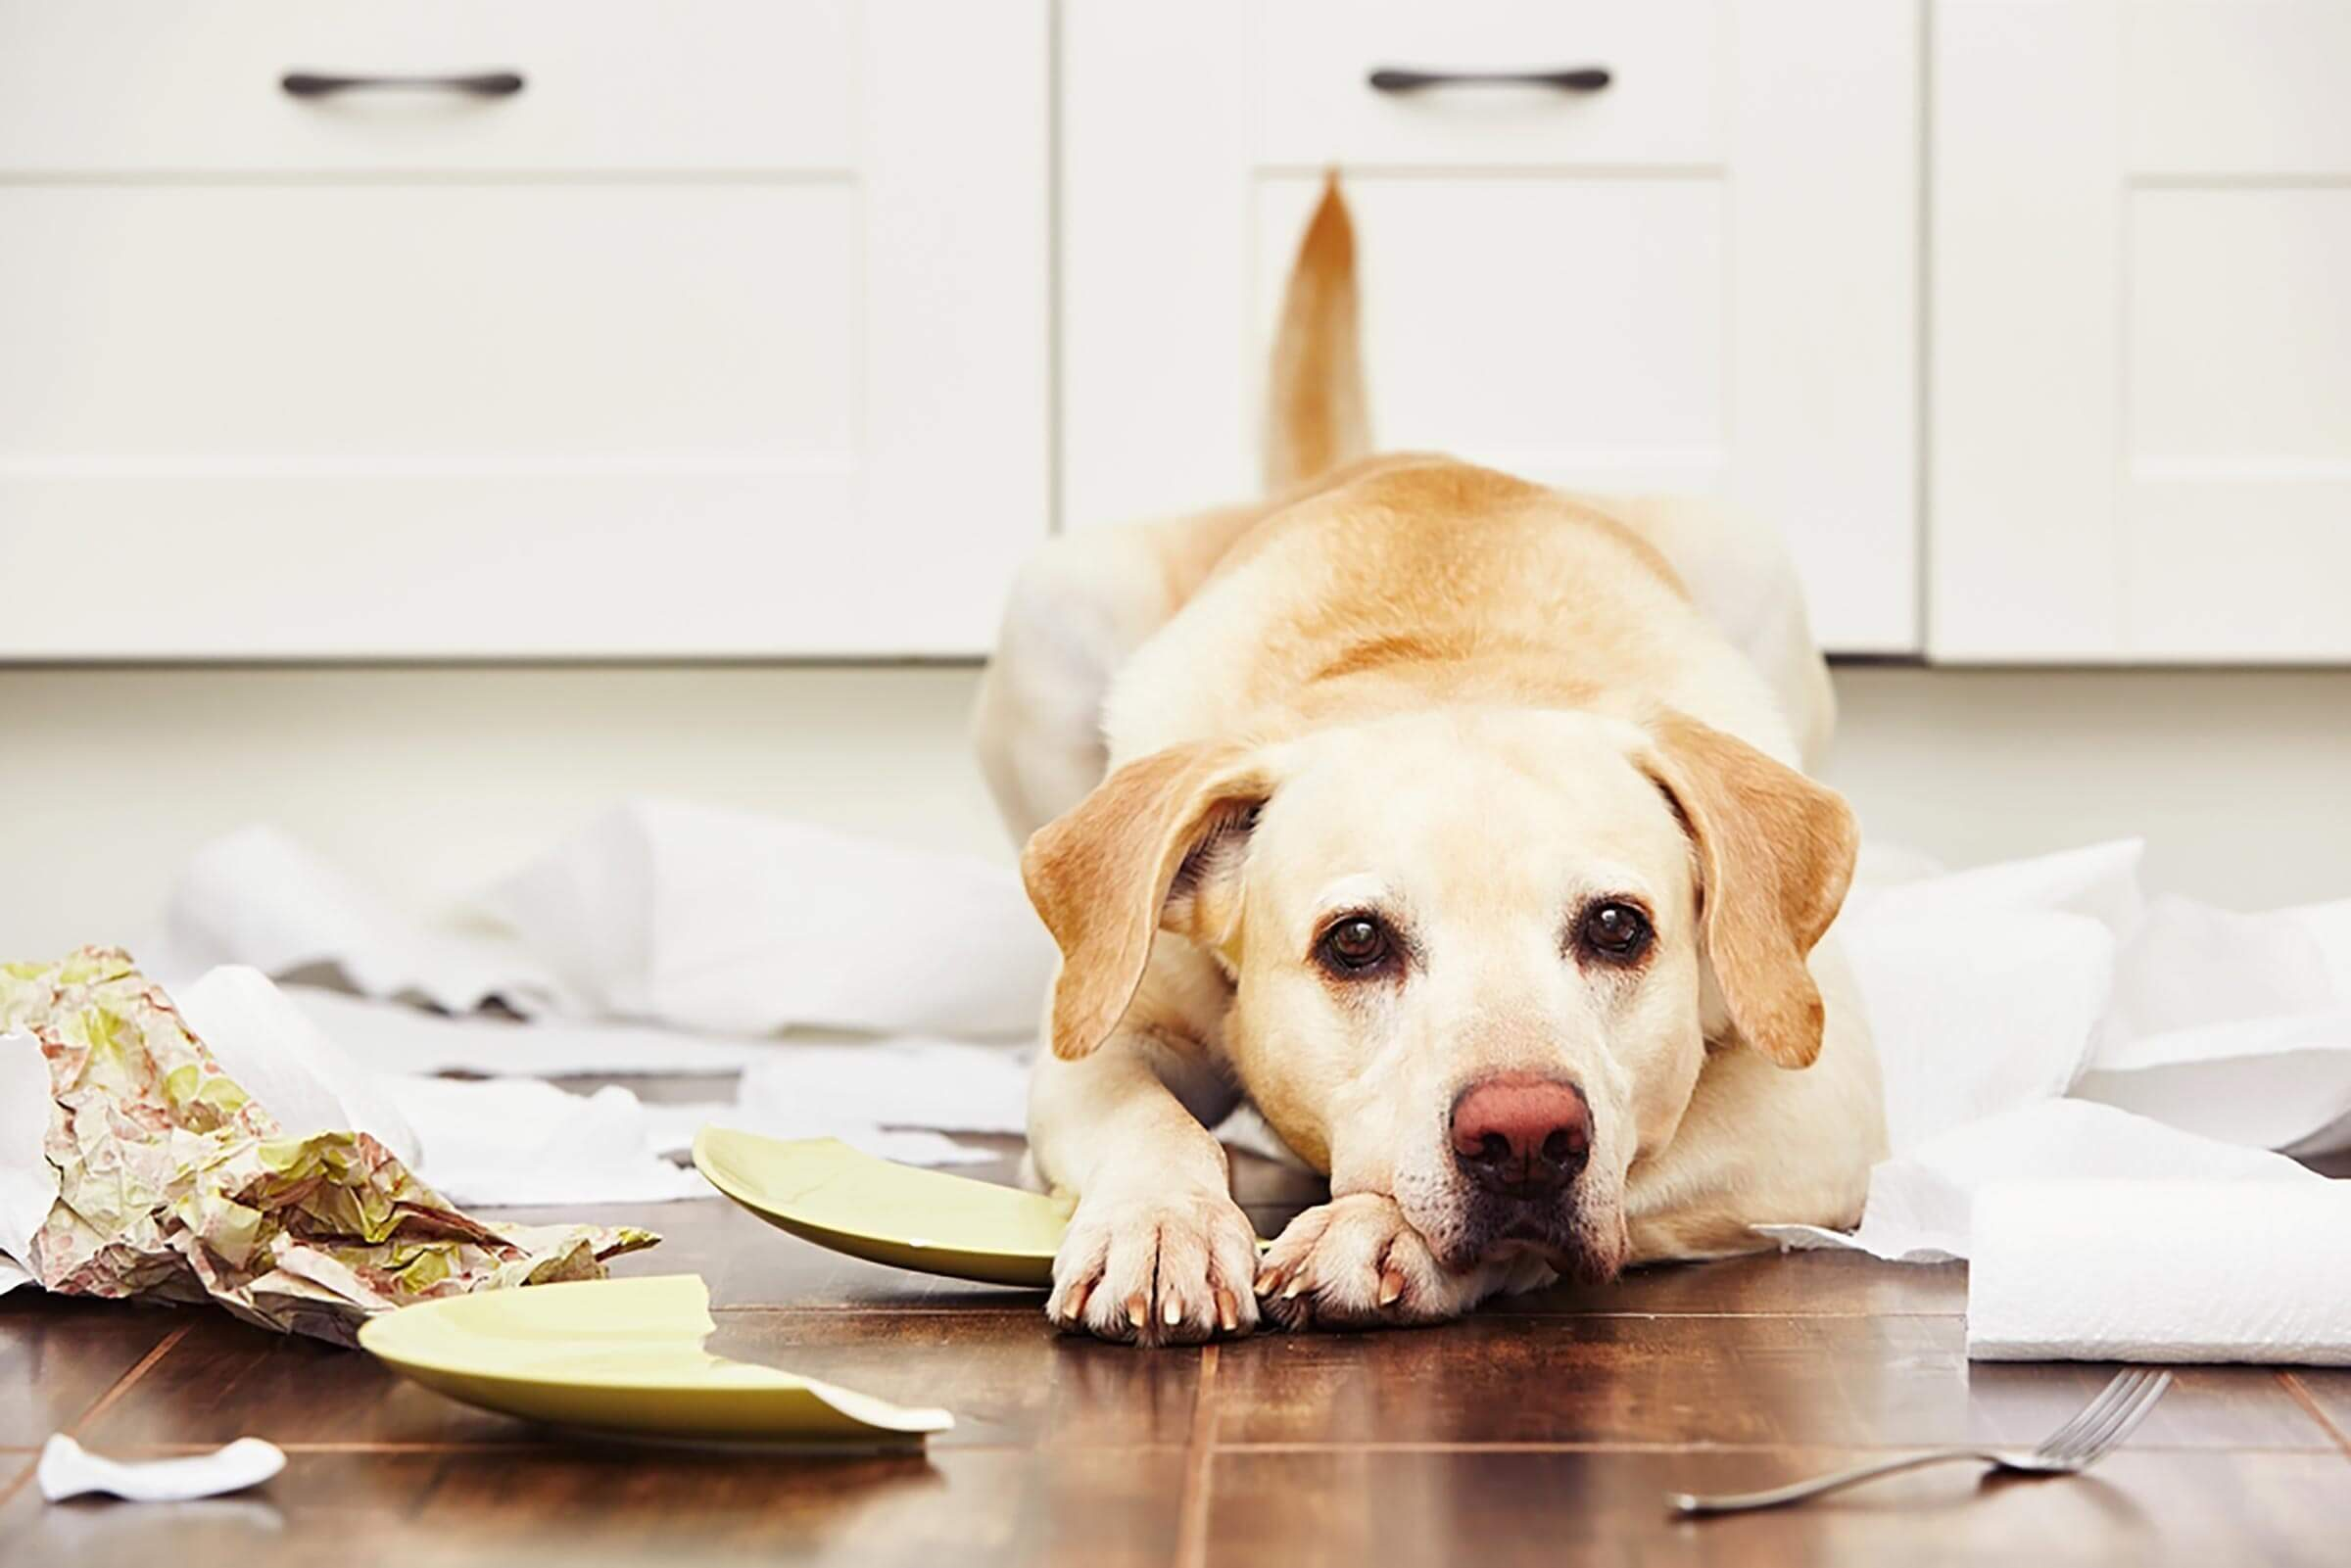 dog sitting among broken dishes on the floor